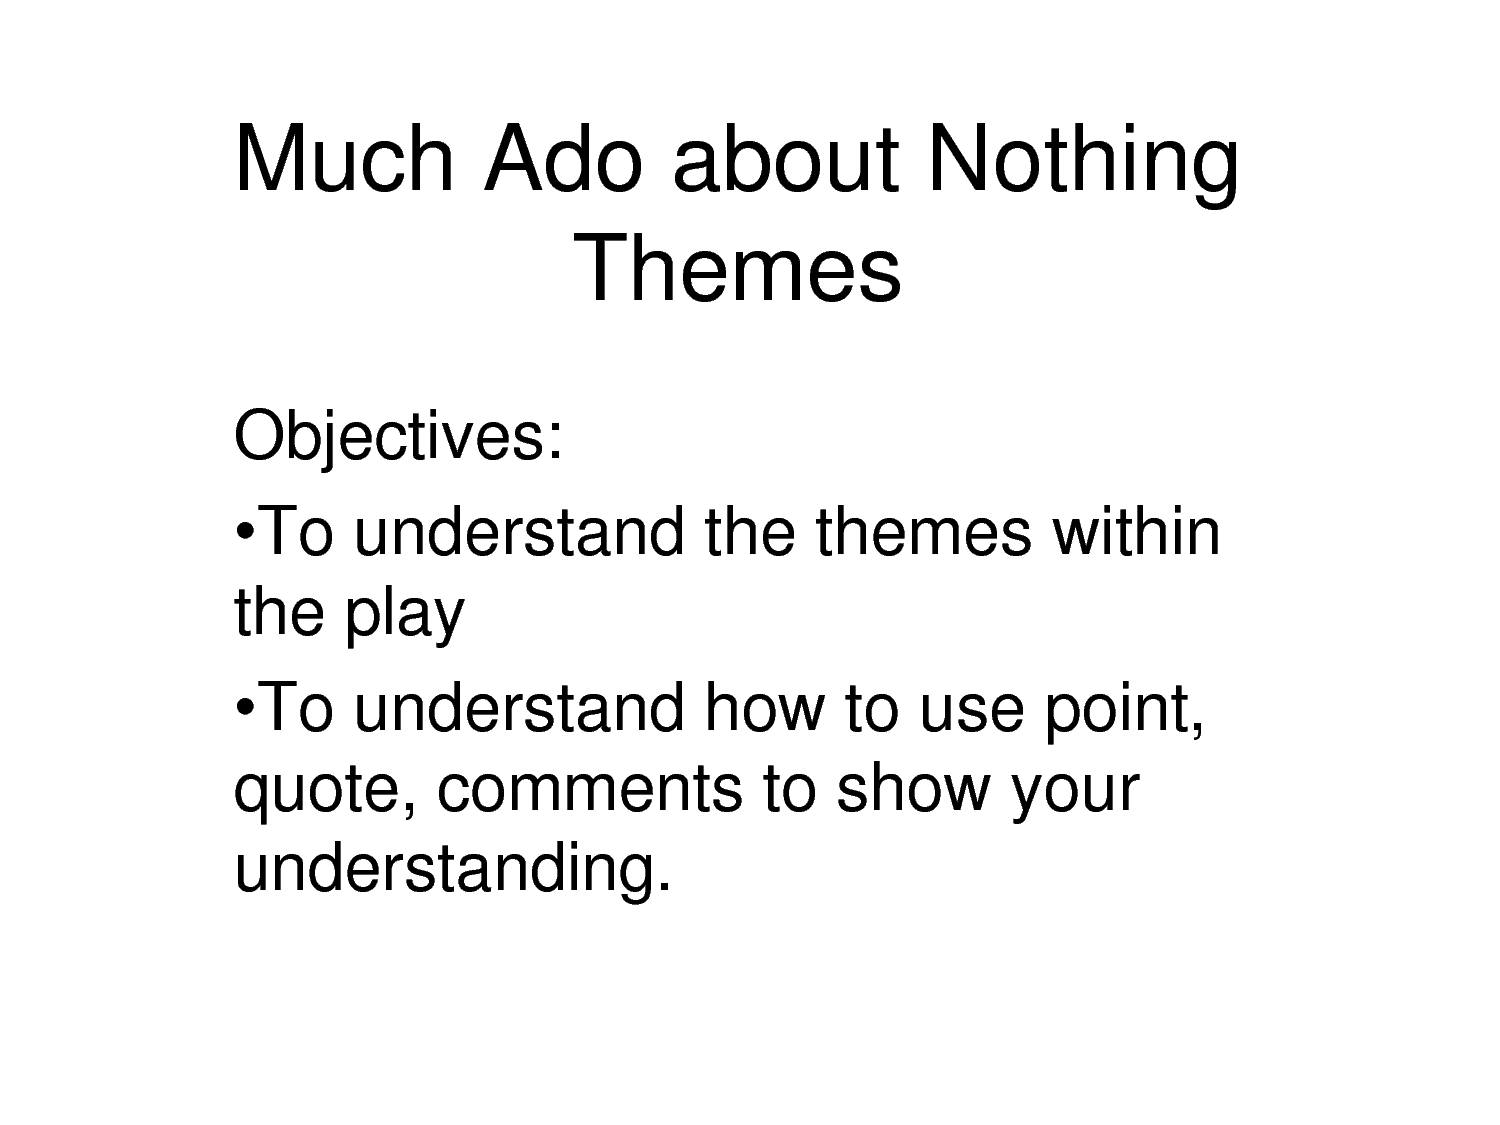 themes of much ado about nothing Much ado about nothing: novel summary: act 2, scene 1, free study guides and book notes including comprehensive chapter analysis, complete summary analysis, author biography information, character profiles, theme analysis, metaphor analysis, and top ten quotes on classic literature.